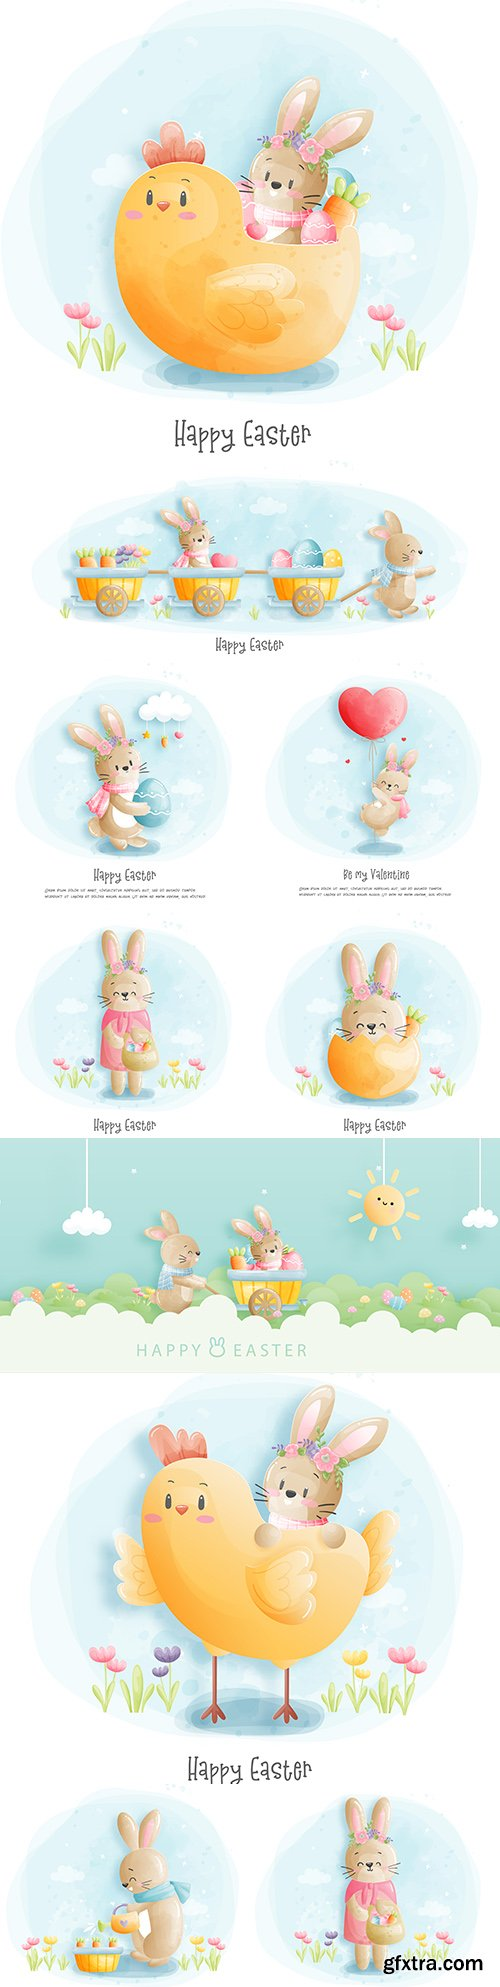 Happy Easter watercolor happy with illustration rabbit and chicken